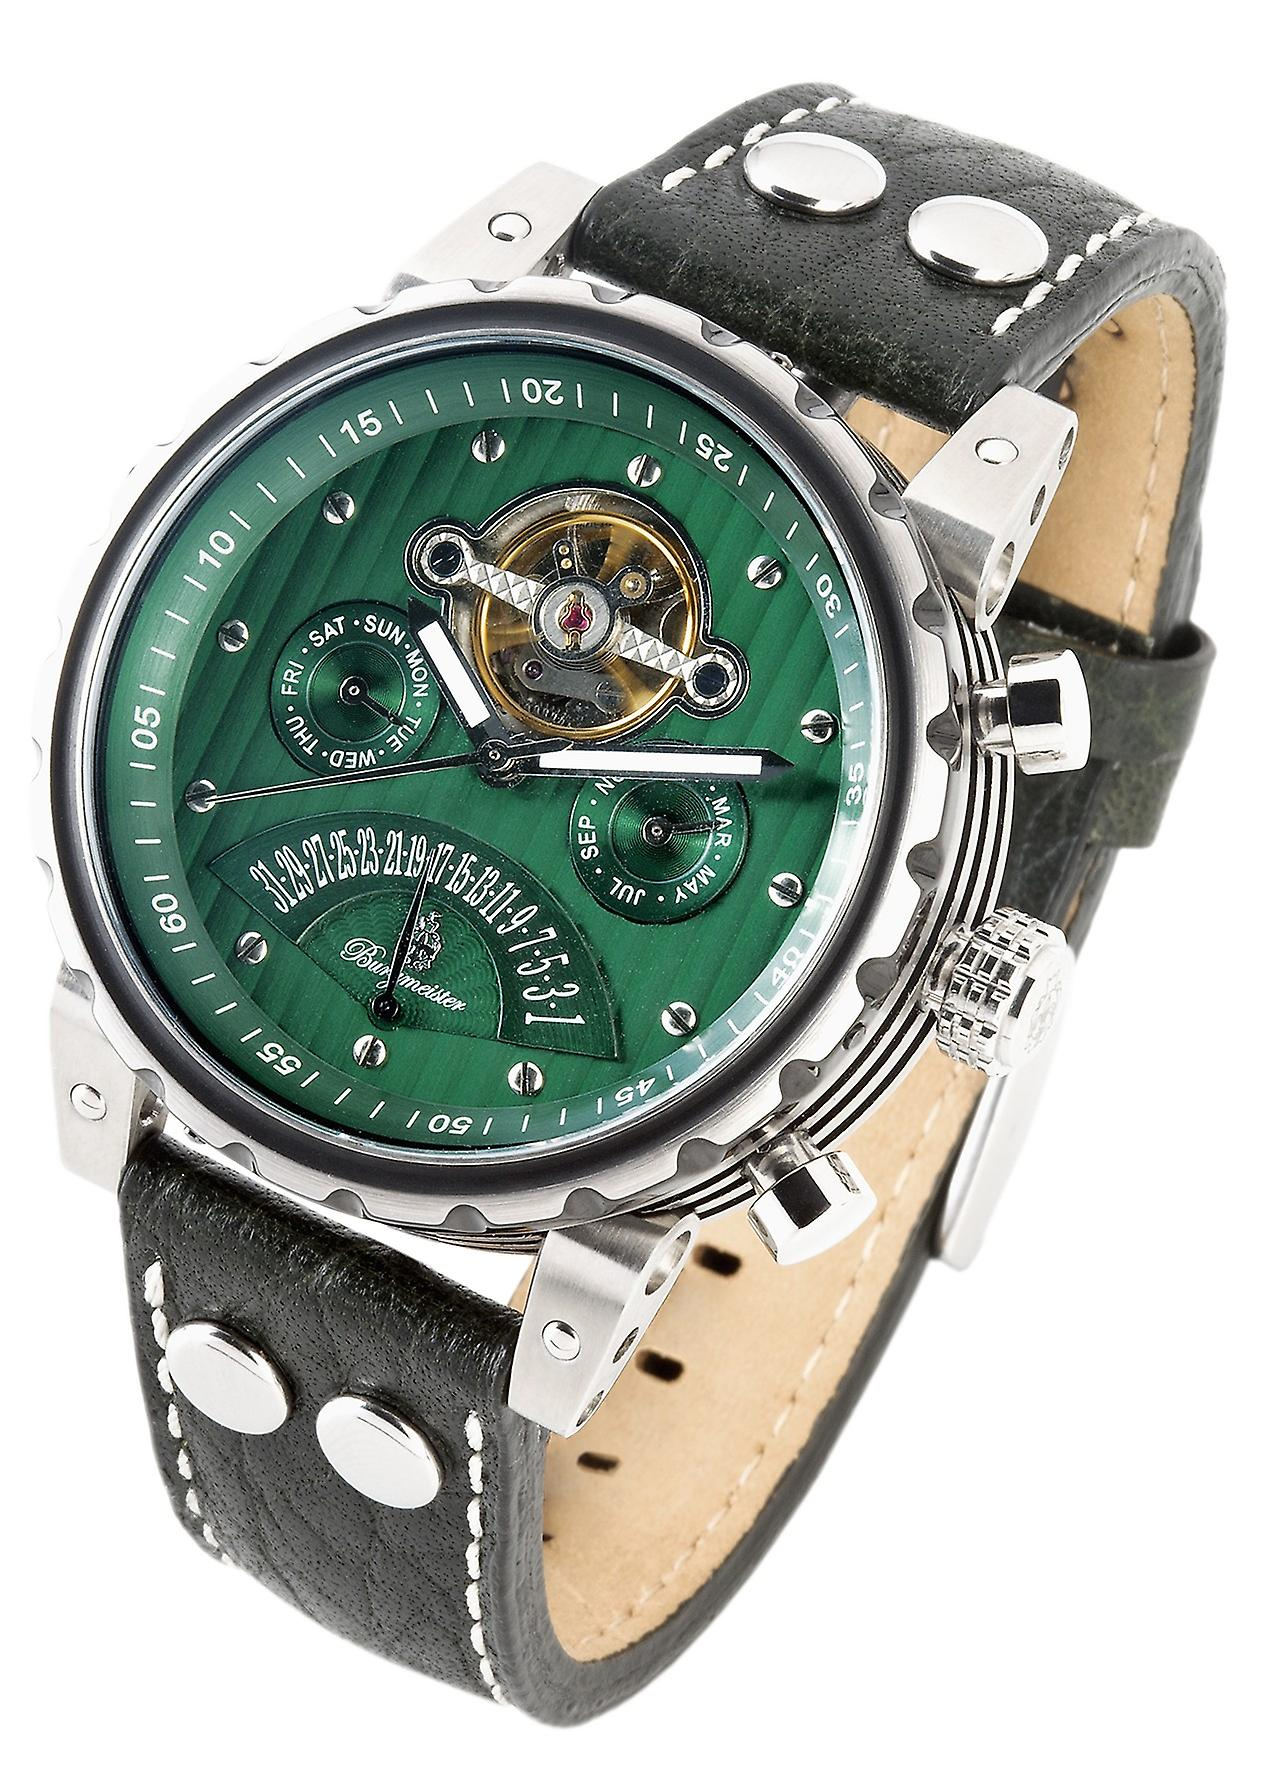 Burgmeister Limoges Gents Automatic Watch BM136-990